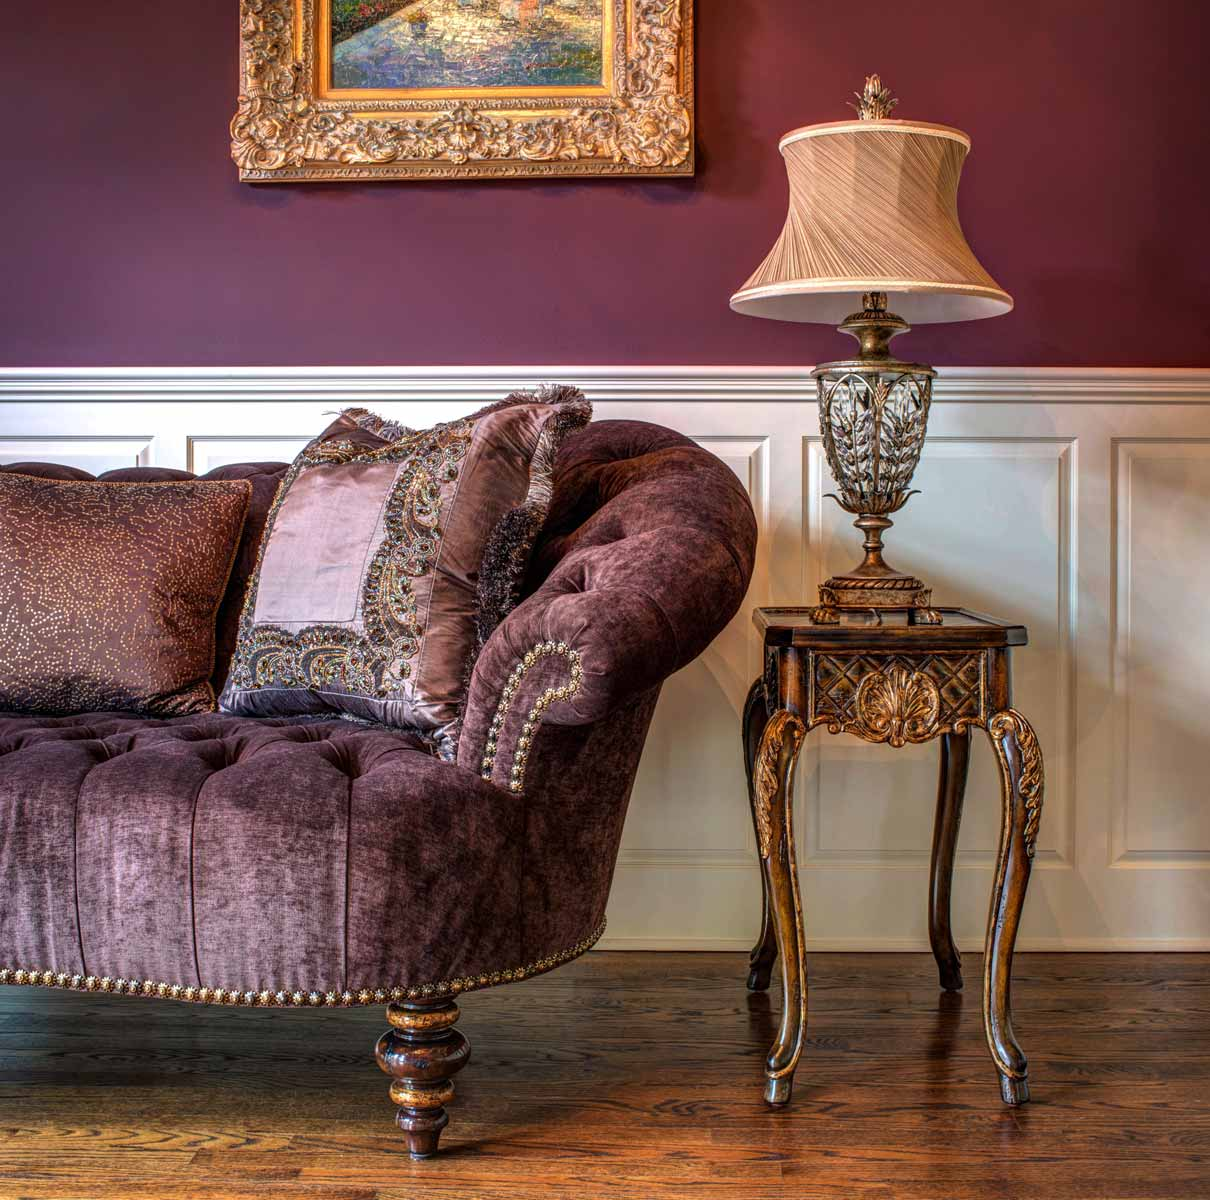 Carsons Furniture Outlet Lombard Cars Image 2018